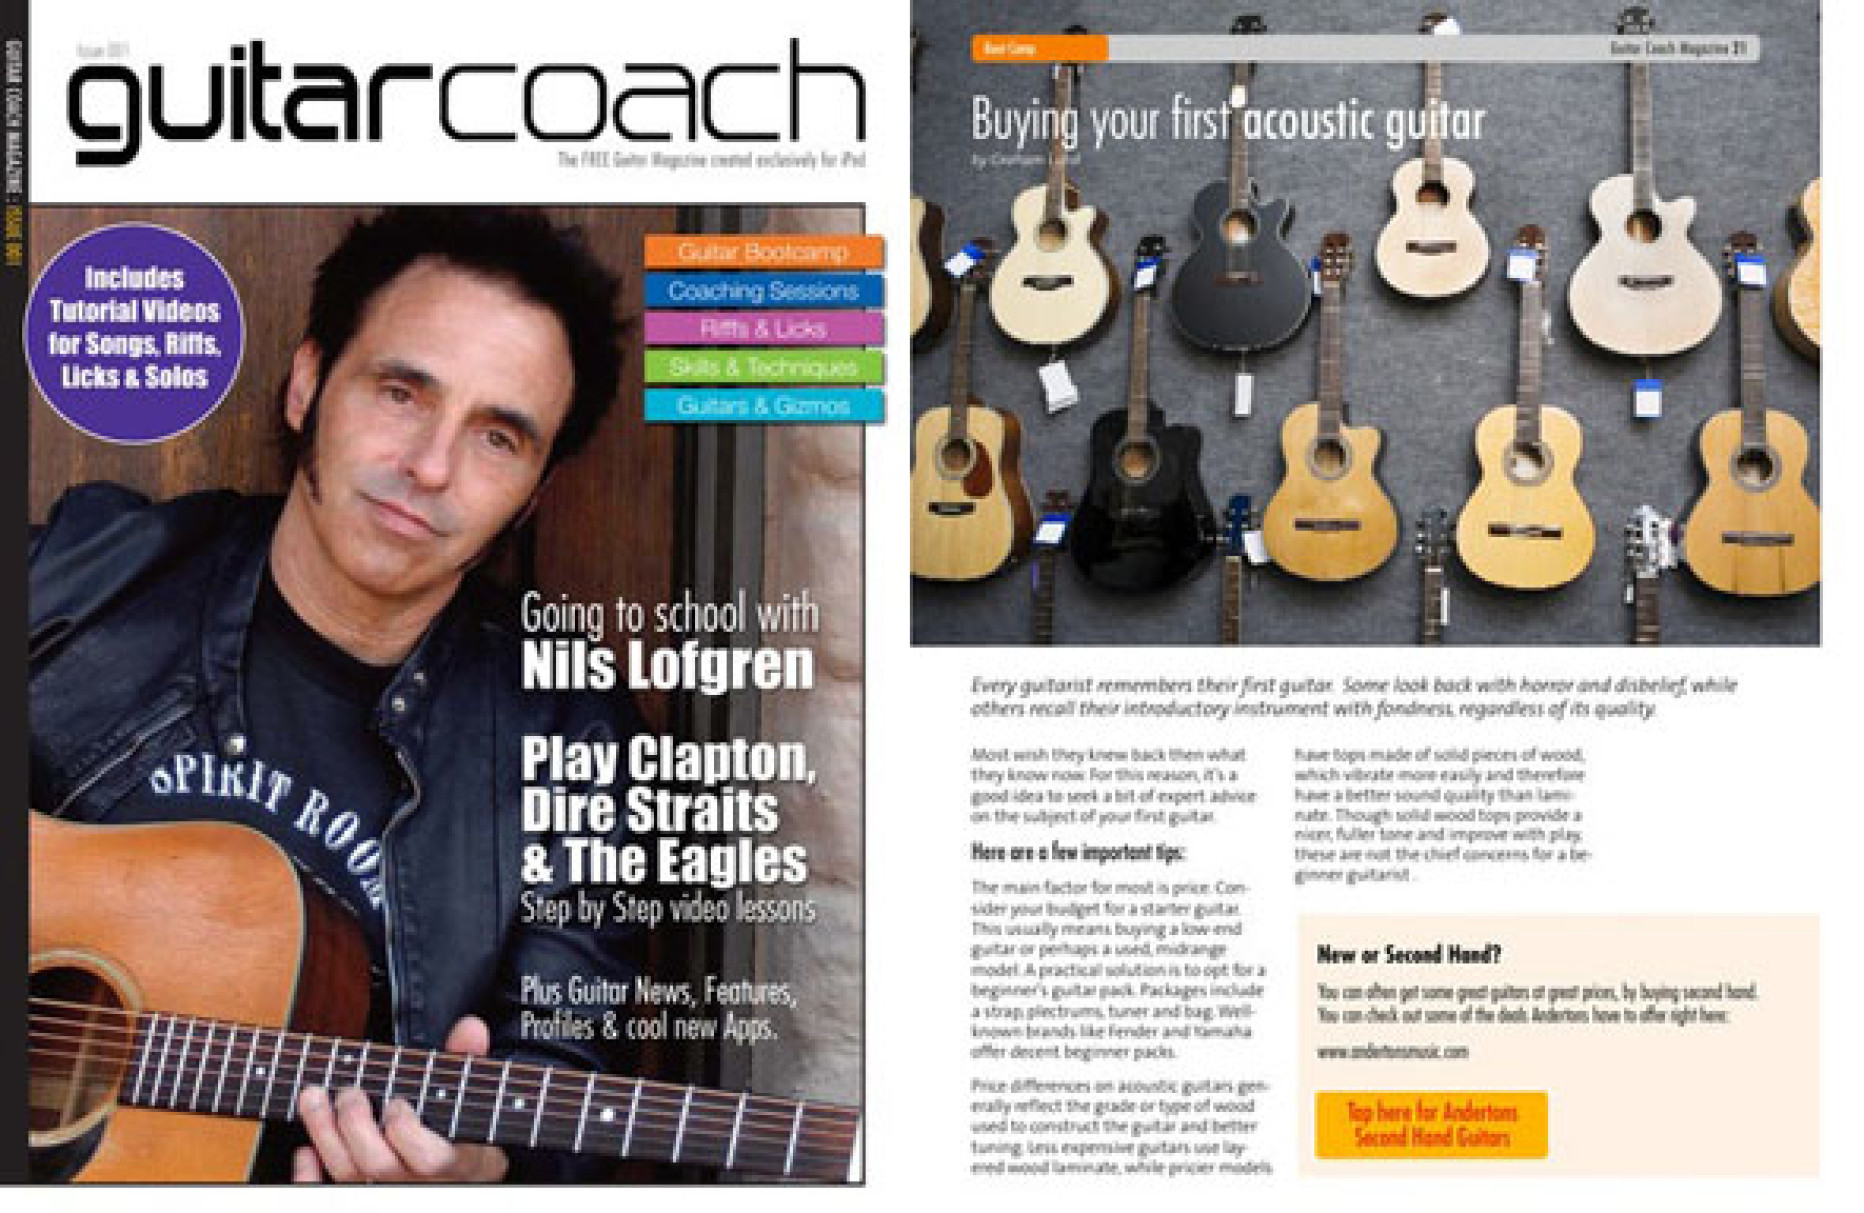 Guitar Coach Magazine – It's Time to Pick Up the Plectrum